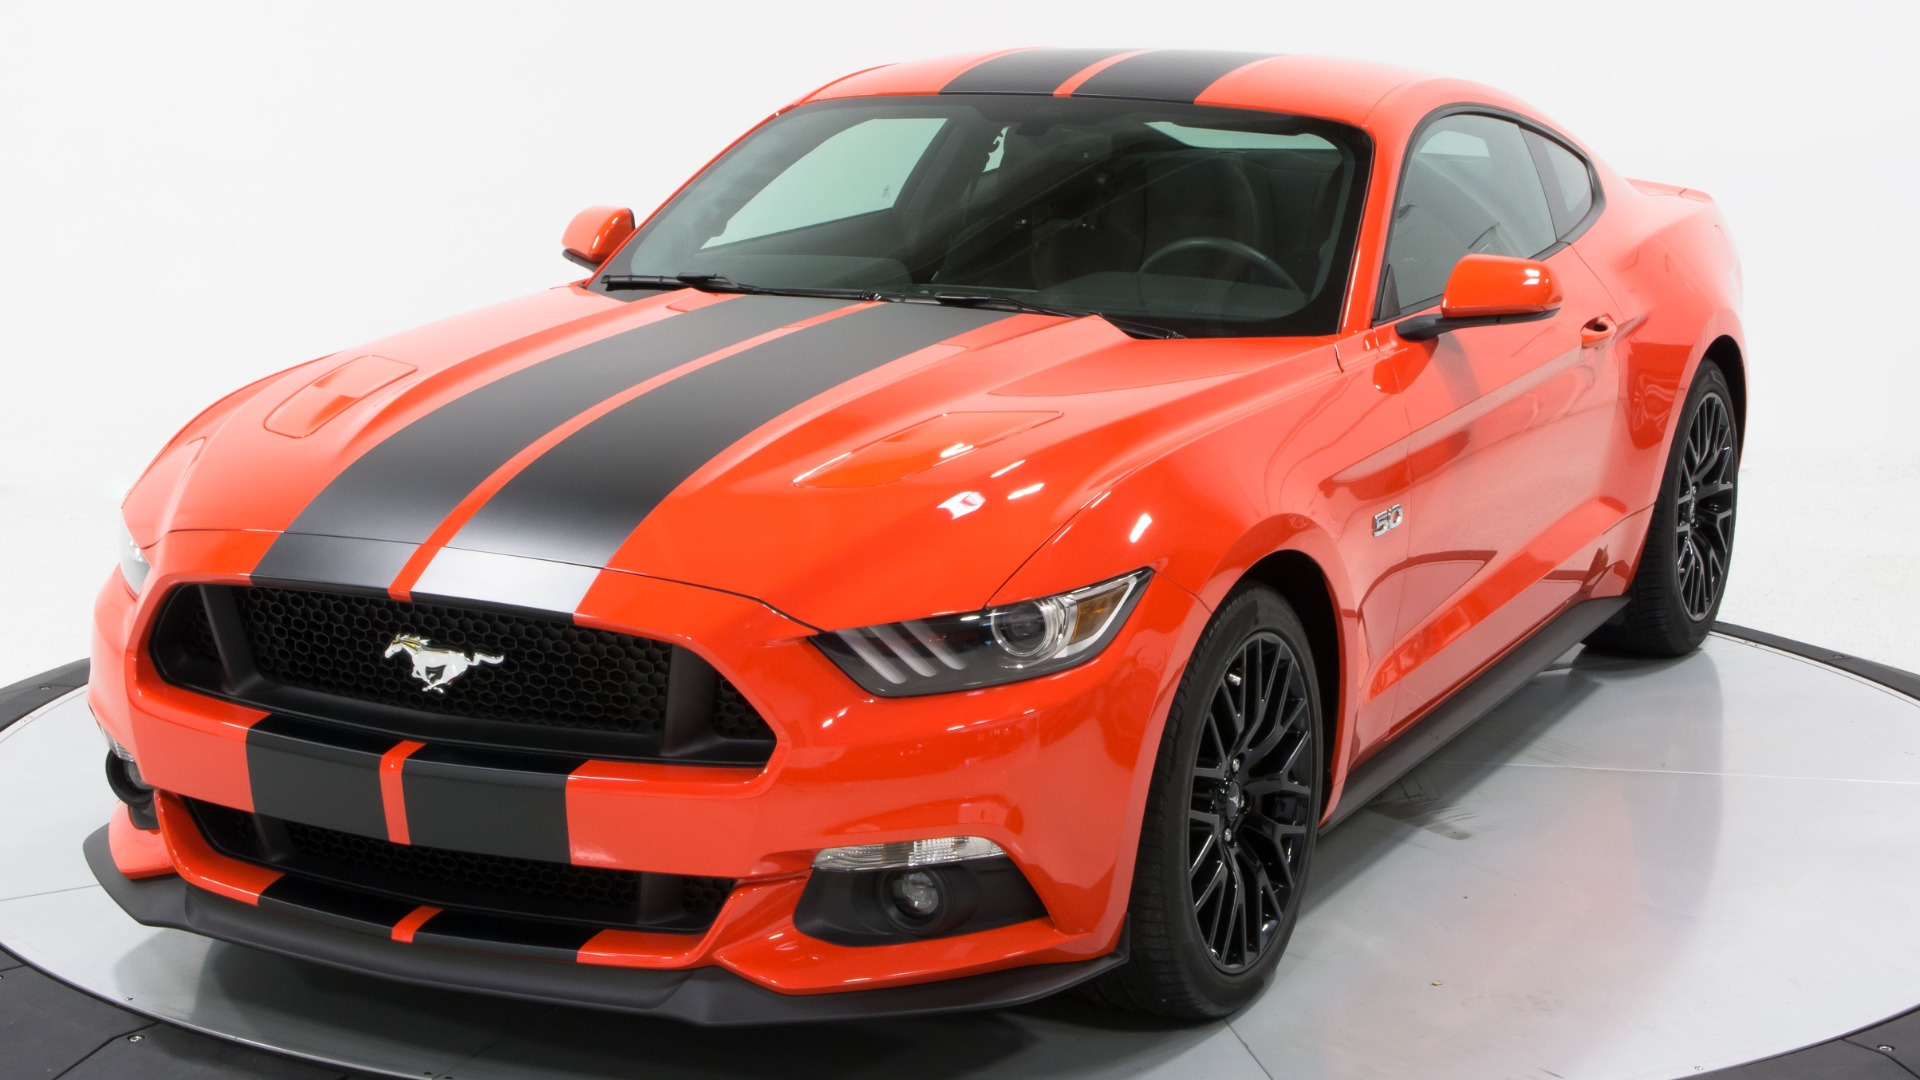 2015 ford mustang gt performance pkg stock 22541 for sale near pompano beach fl fl ford dealer. Black Bedroom Furniture Sets. Home Design Ideas